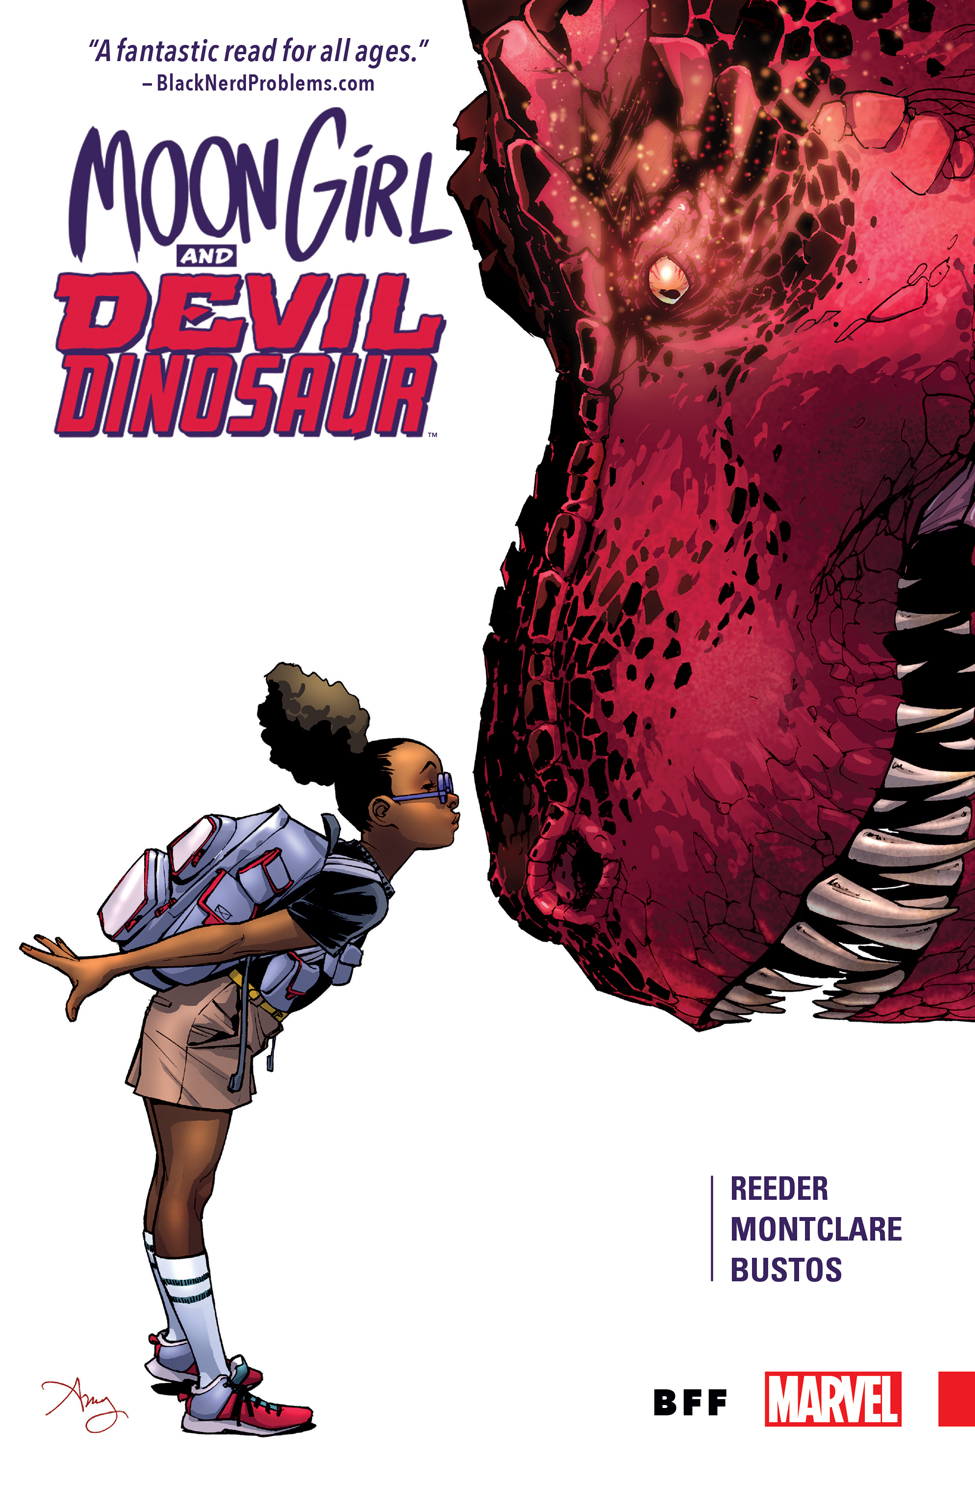 Marvel's Moon Girl & Devil Dinosaur Wins 2016 Glyph Award